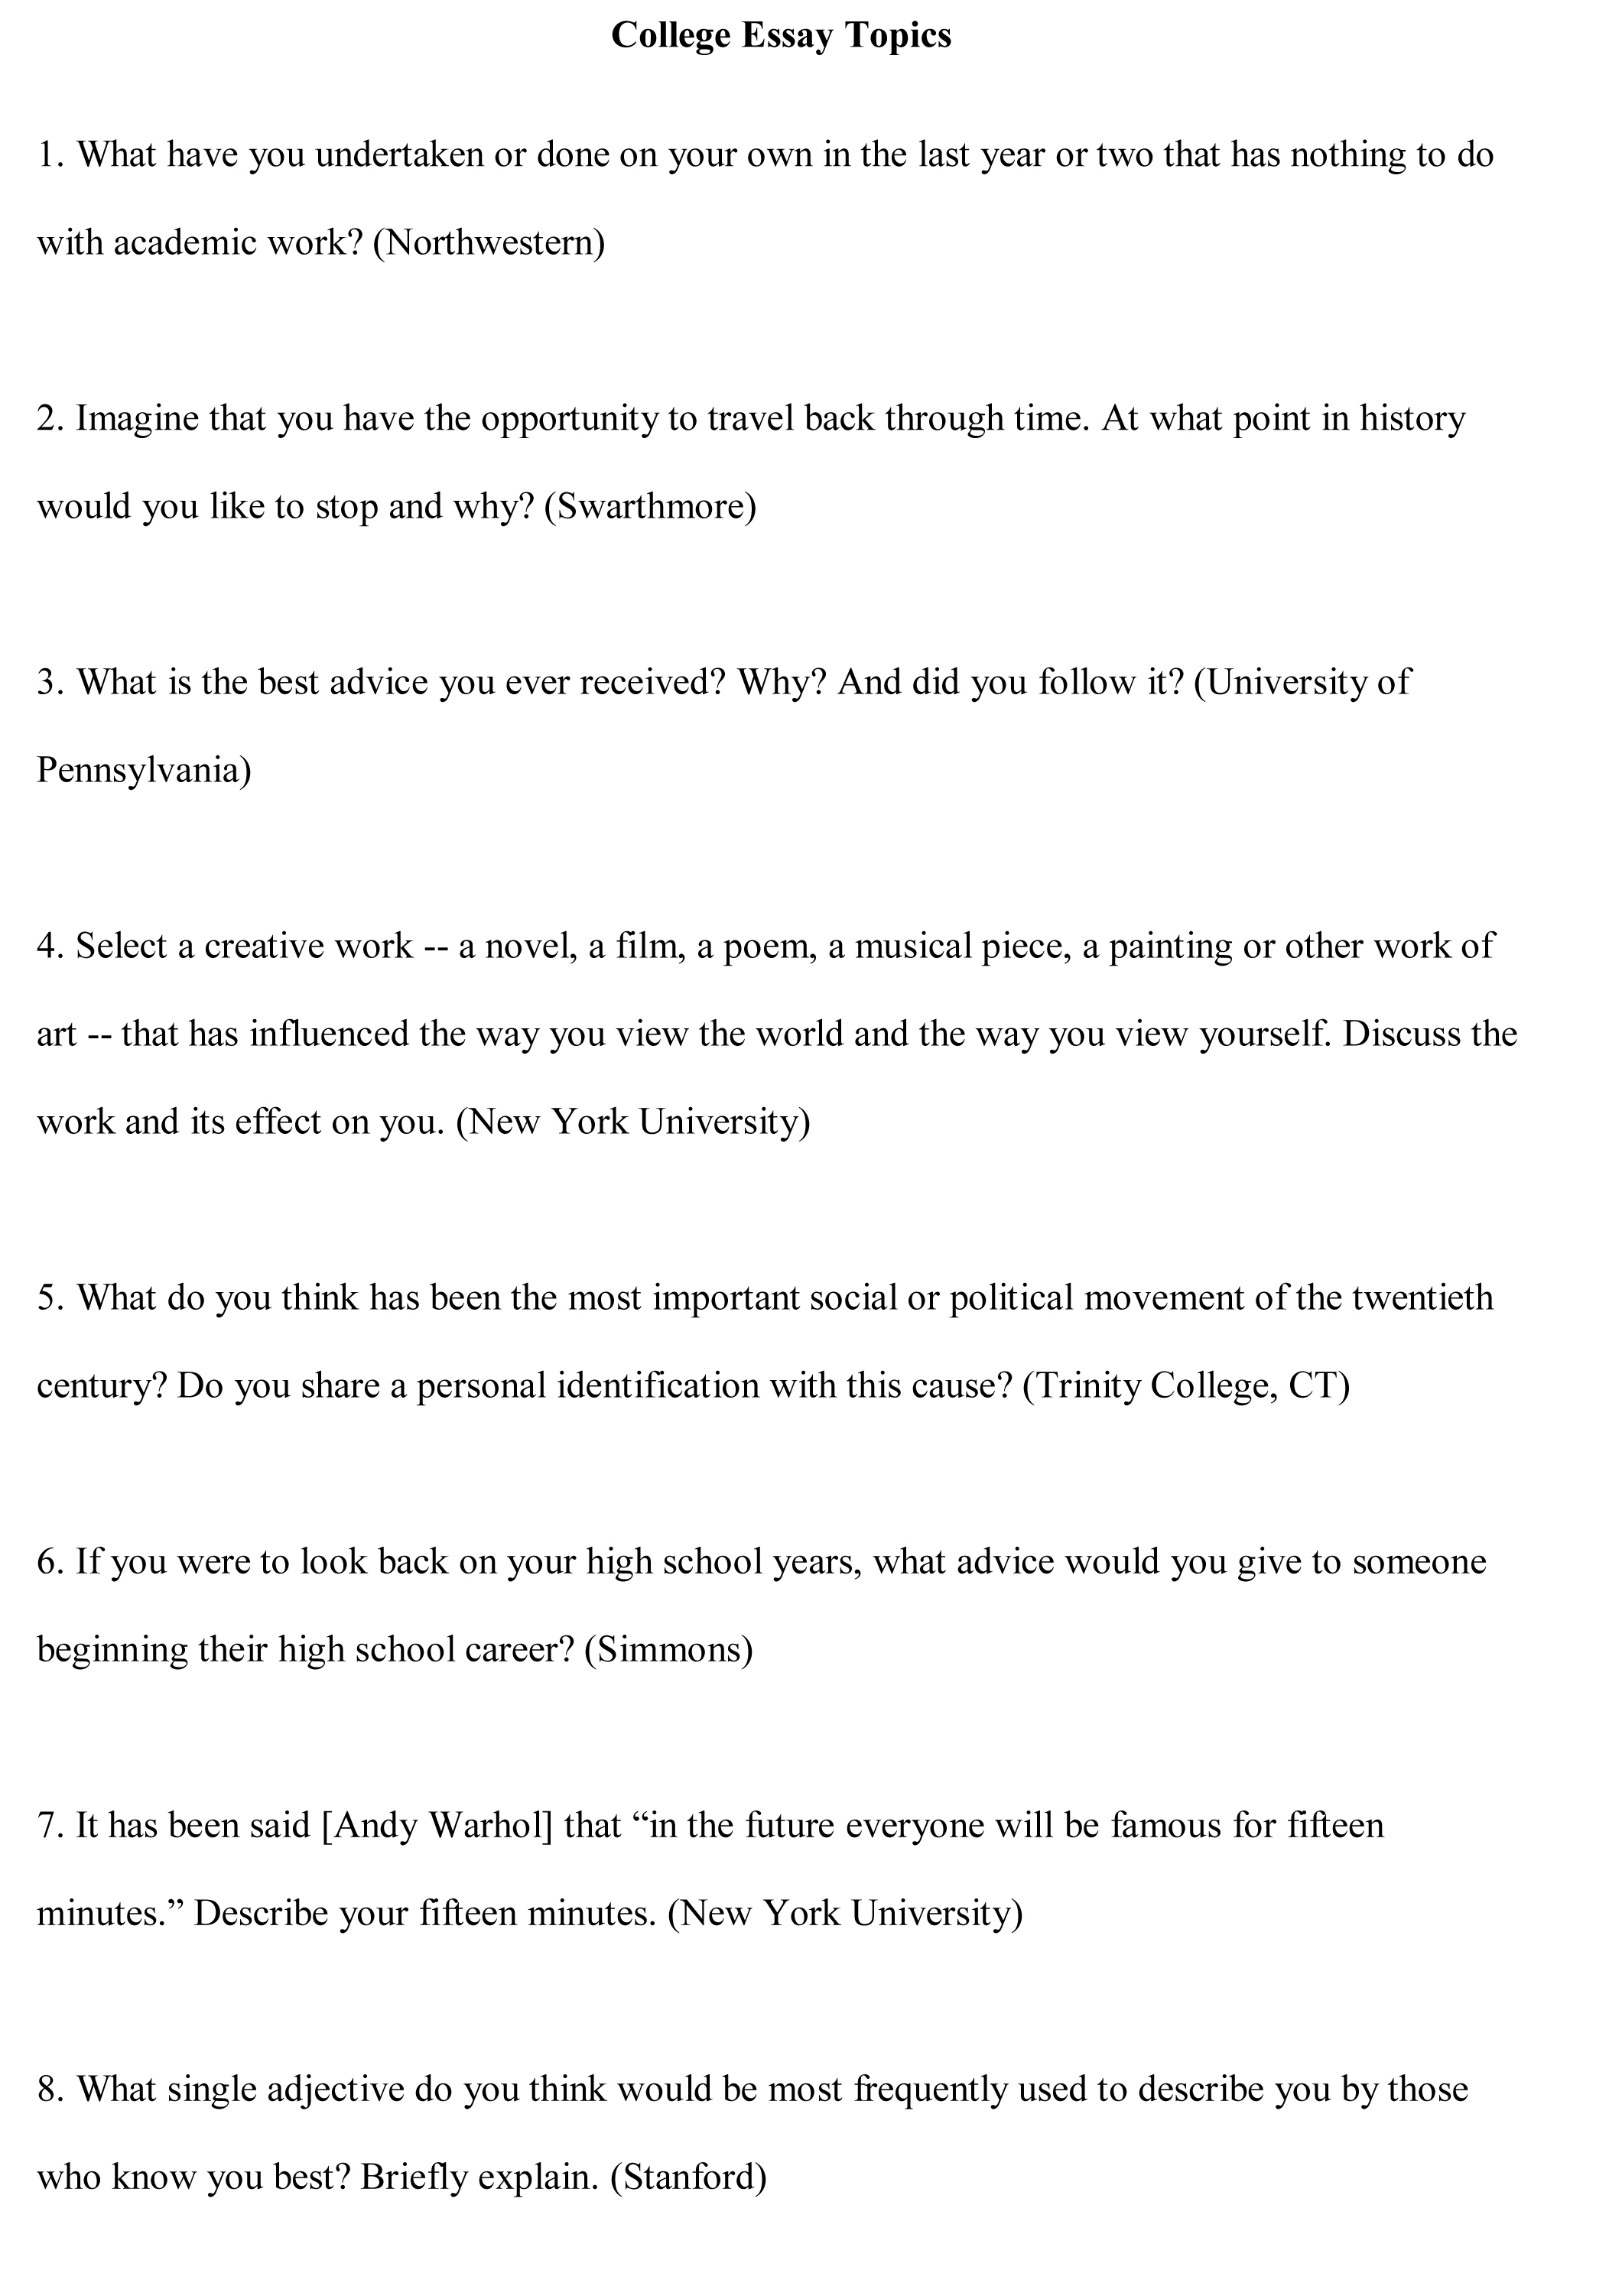 008 Research Paper Great Topics For College Essay Free Astounding History Students Level Full